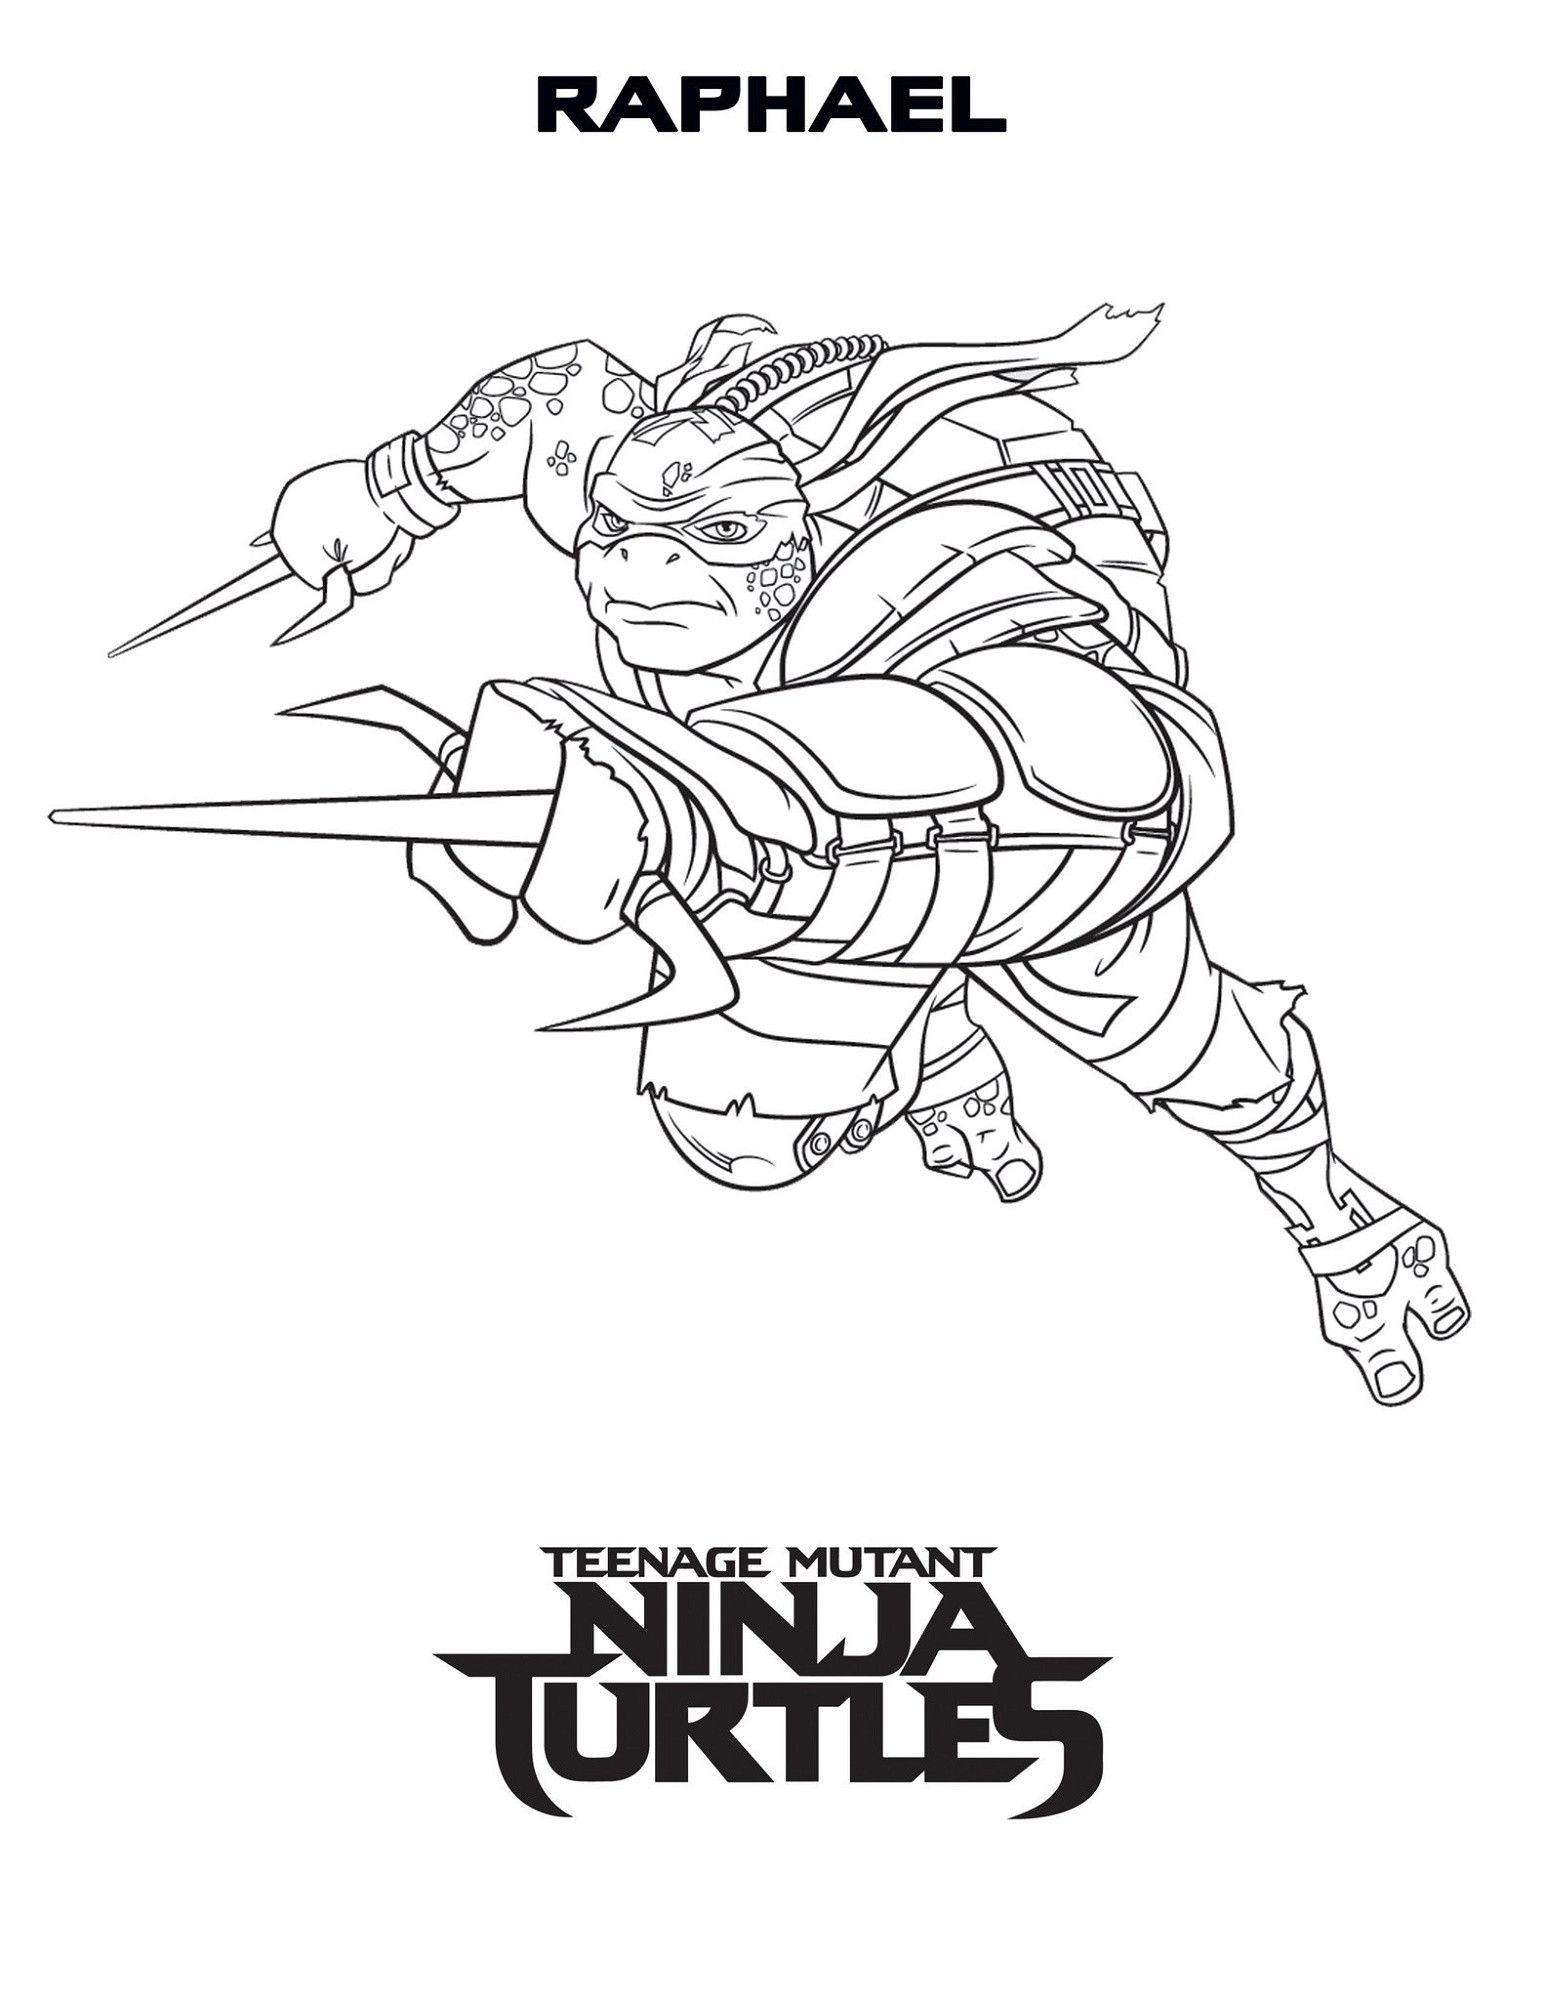 Baby Turtle Coloring Page Youngandtae Com In 2020 Turtle Coloring Pages Ninja Turtle Coloring Pages Ninja Turtles